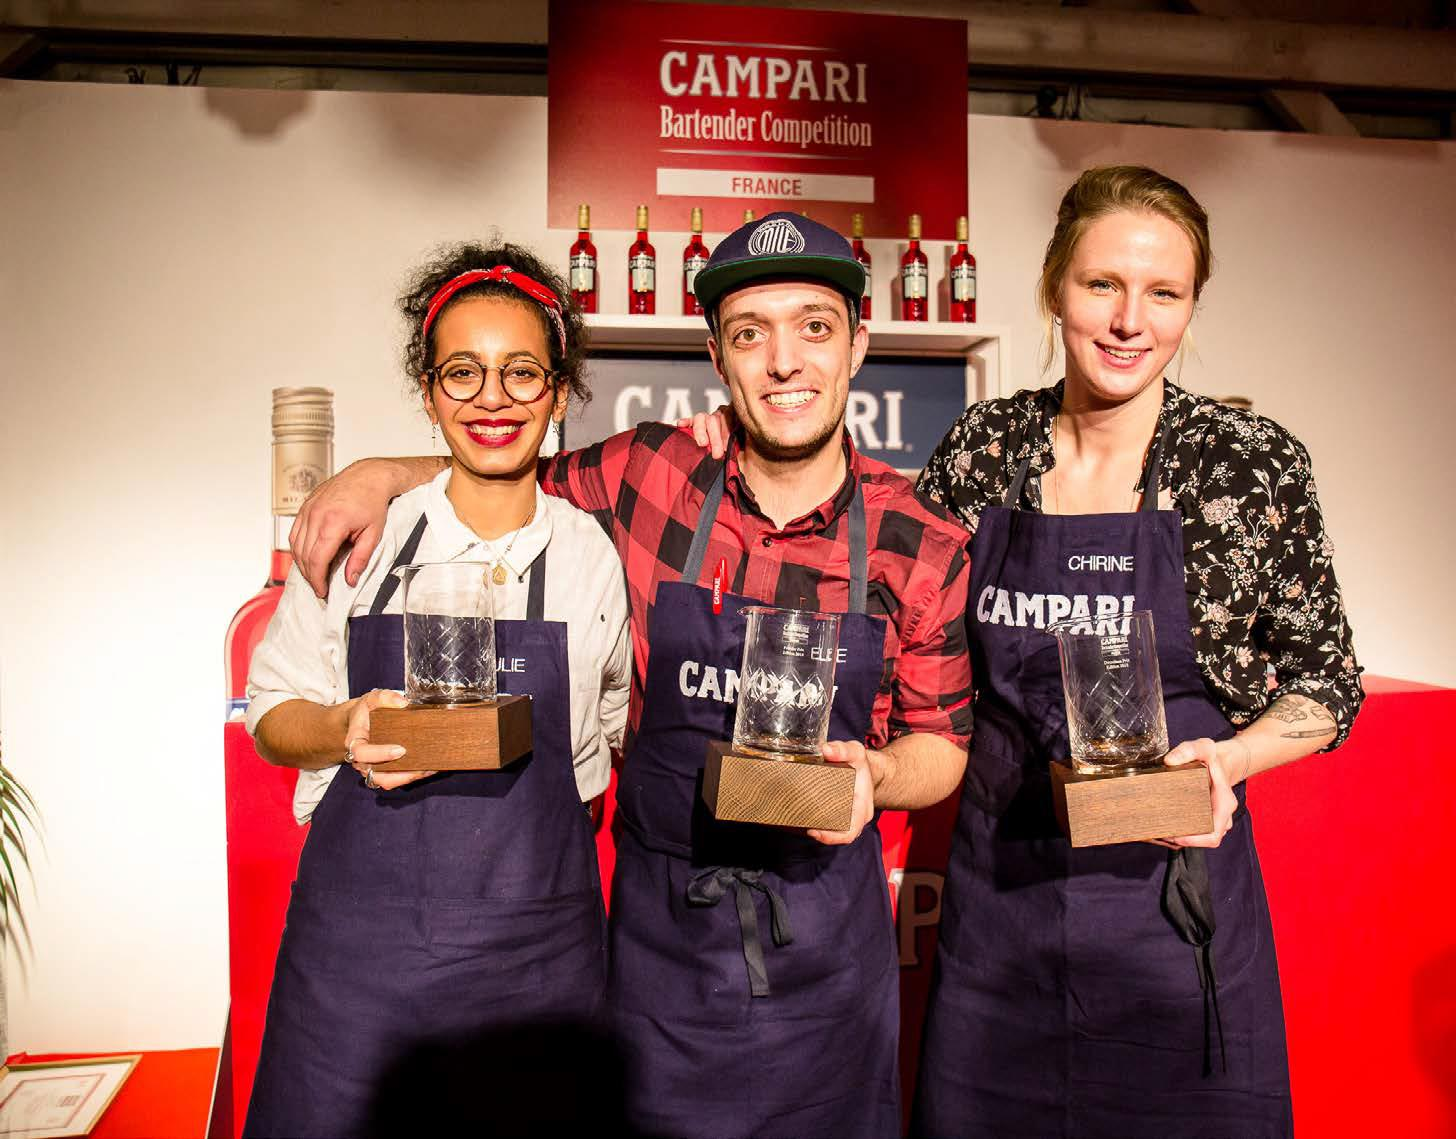 Le podium du Campari Bartender Competition 2018